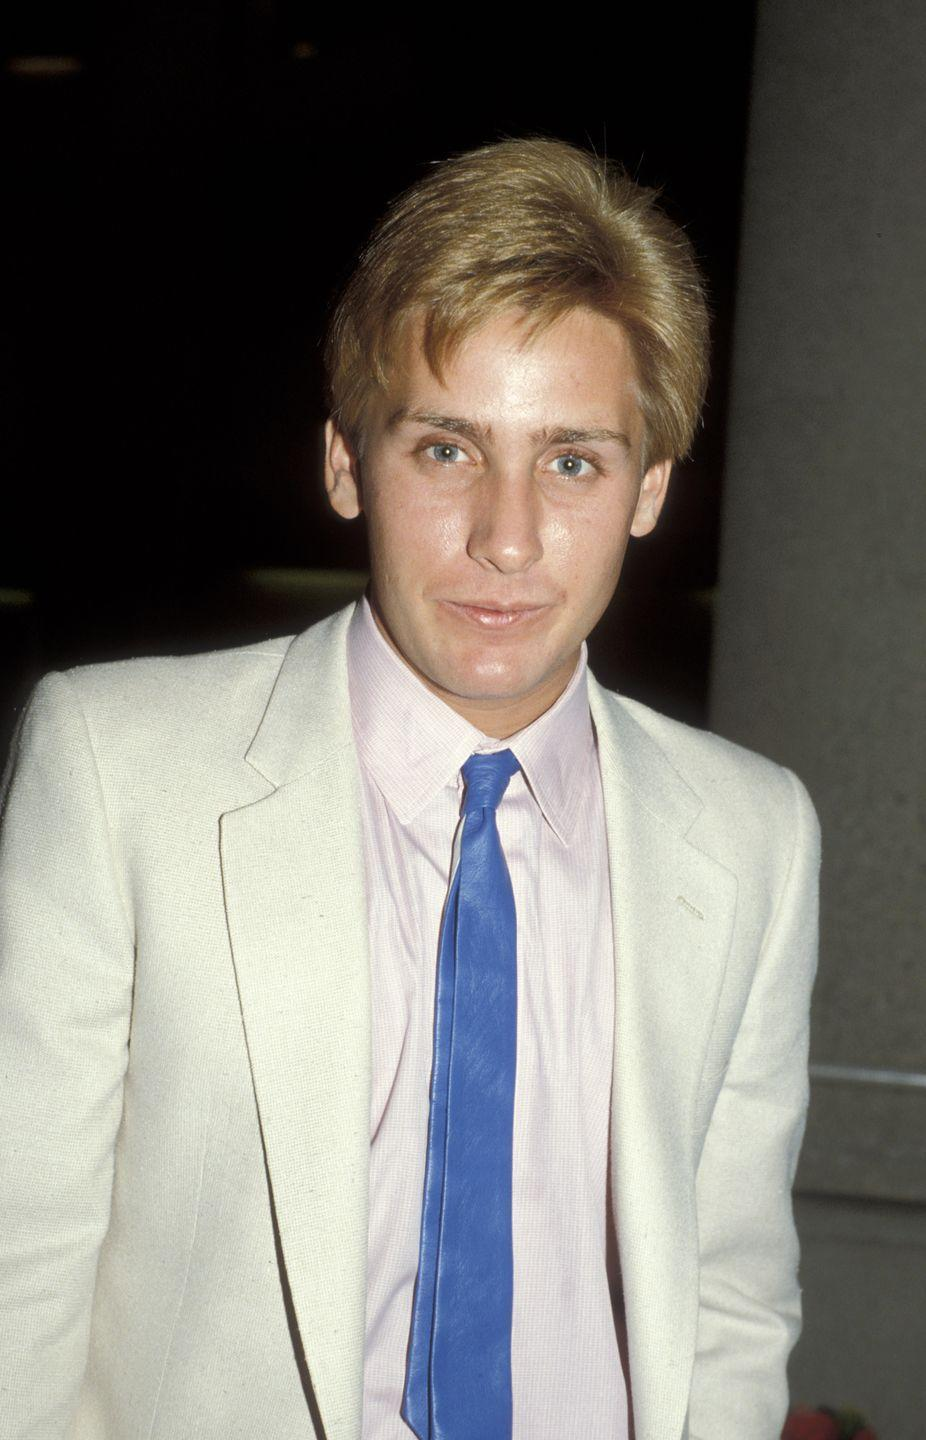 "<p>Emilio Estevez is best known as being an original member of the <a href=""https://www.imdb.com/name/nm0000389/"" rel=""nofollow noopener"" target=""_blank"" data-ylk=""slk:&quot;Brat Pack,&quot;"" class=""link rapid-noclick-resp"">""Brat Pack,""</a> after appearing in some of the most iconic movies from the '80s, including <em>The Breakfast Club </em>(1985), <em>St. Elmo's Fire </em>(1985), and <em>The Outsiders </em>(1983)<em>.</em></p>"